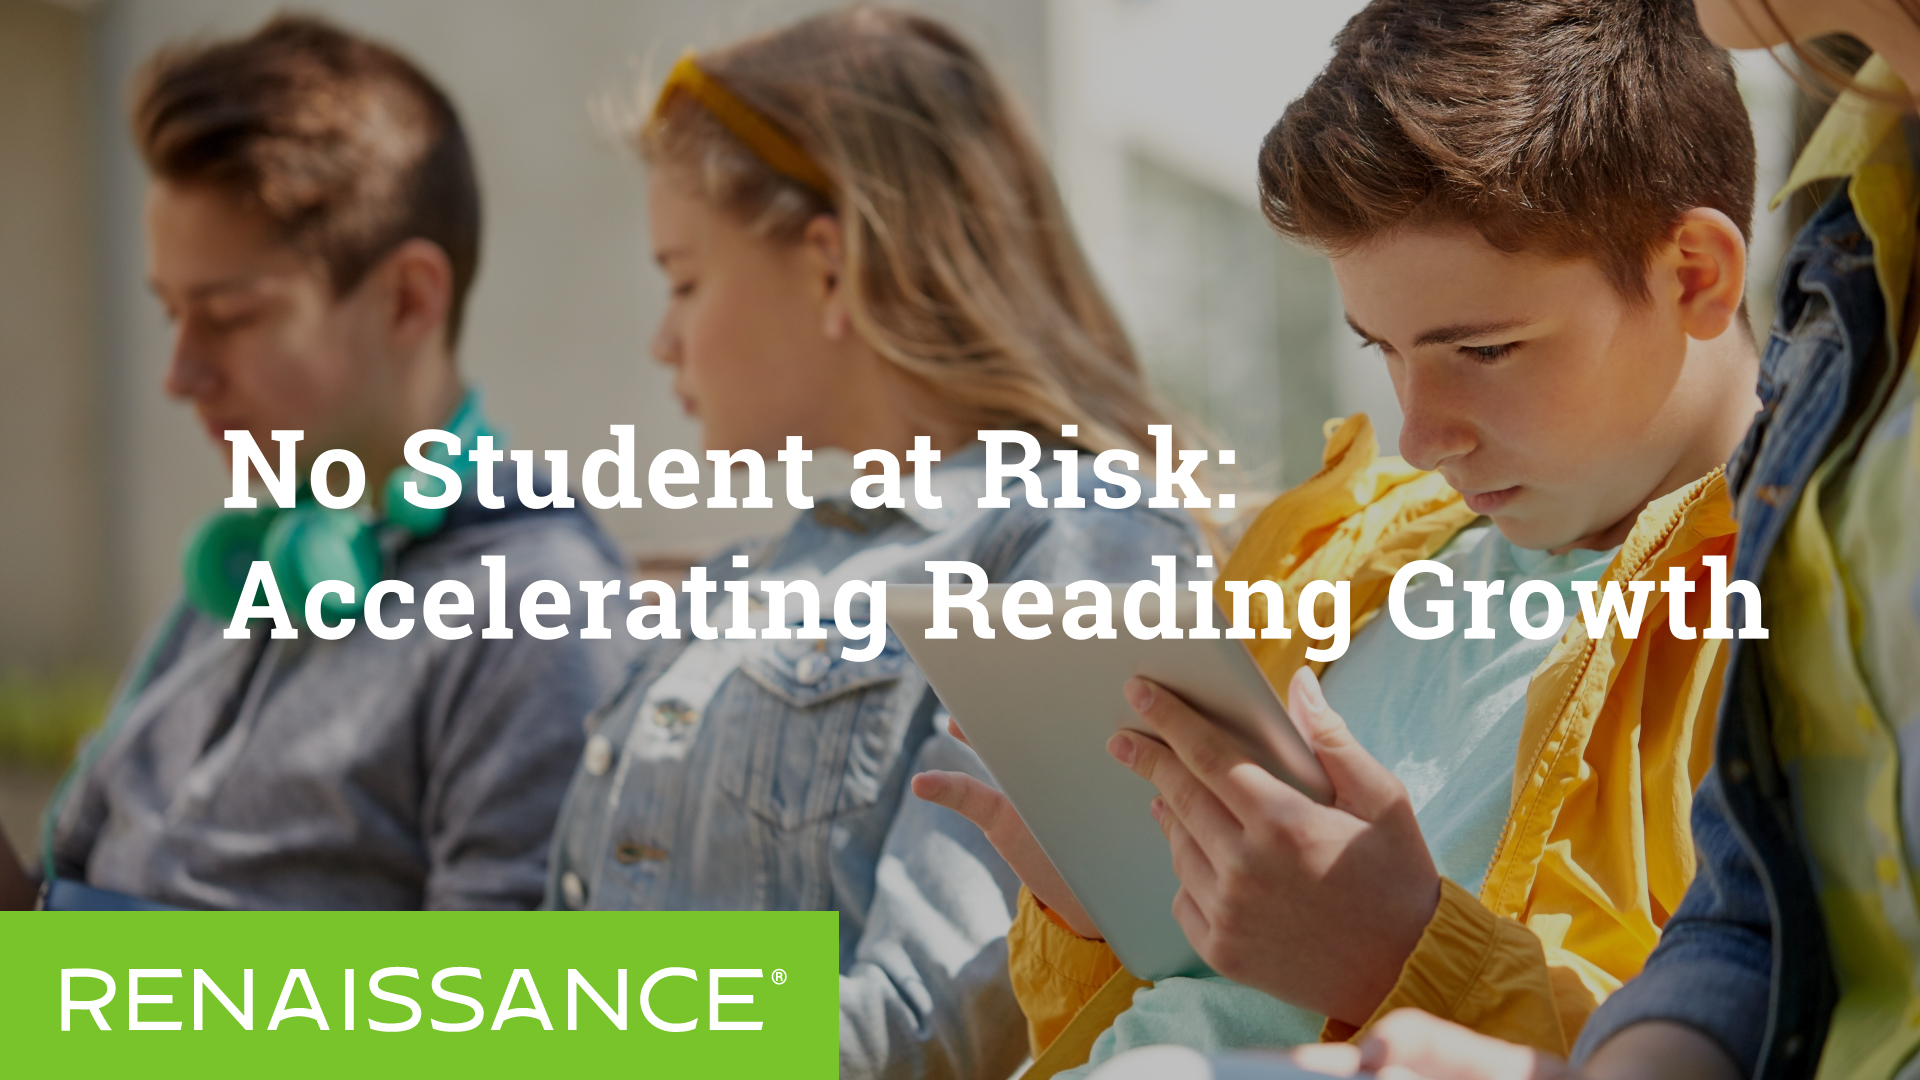 No Student at Risk: Accelerating Reading Growth